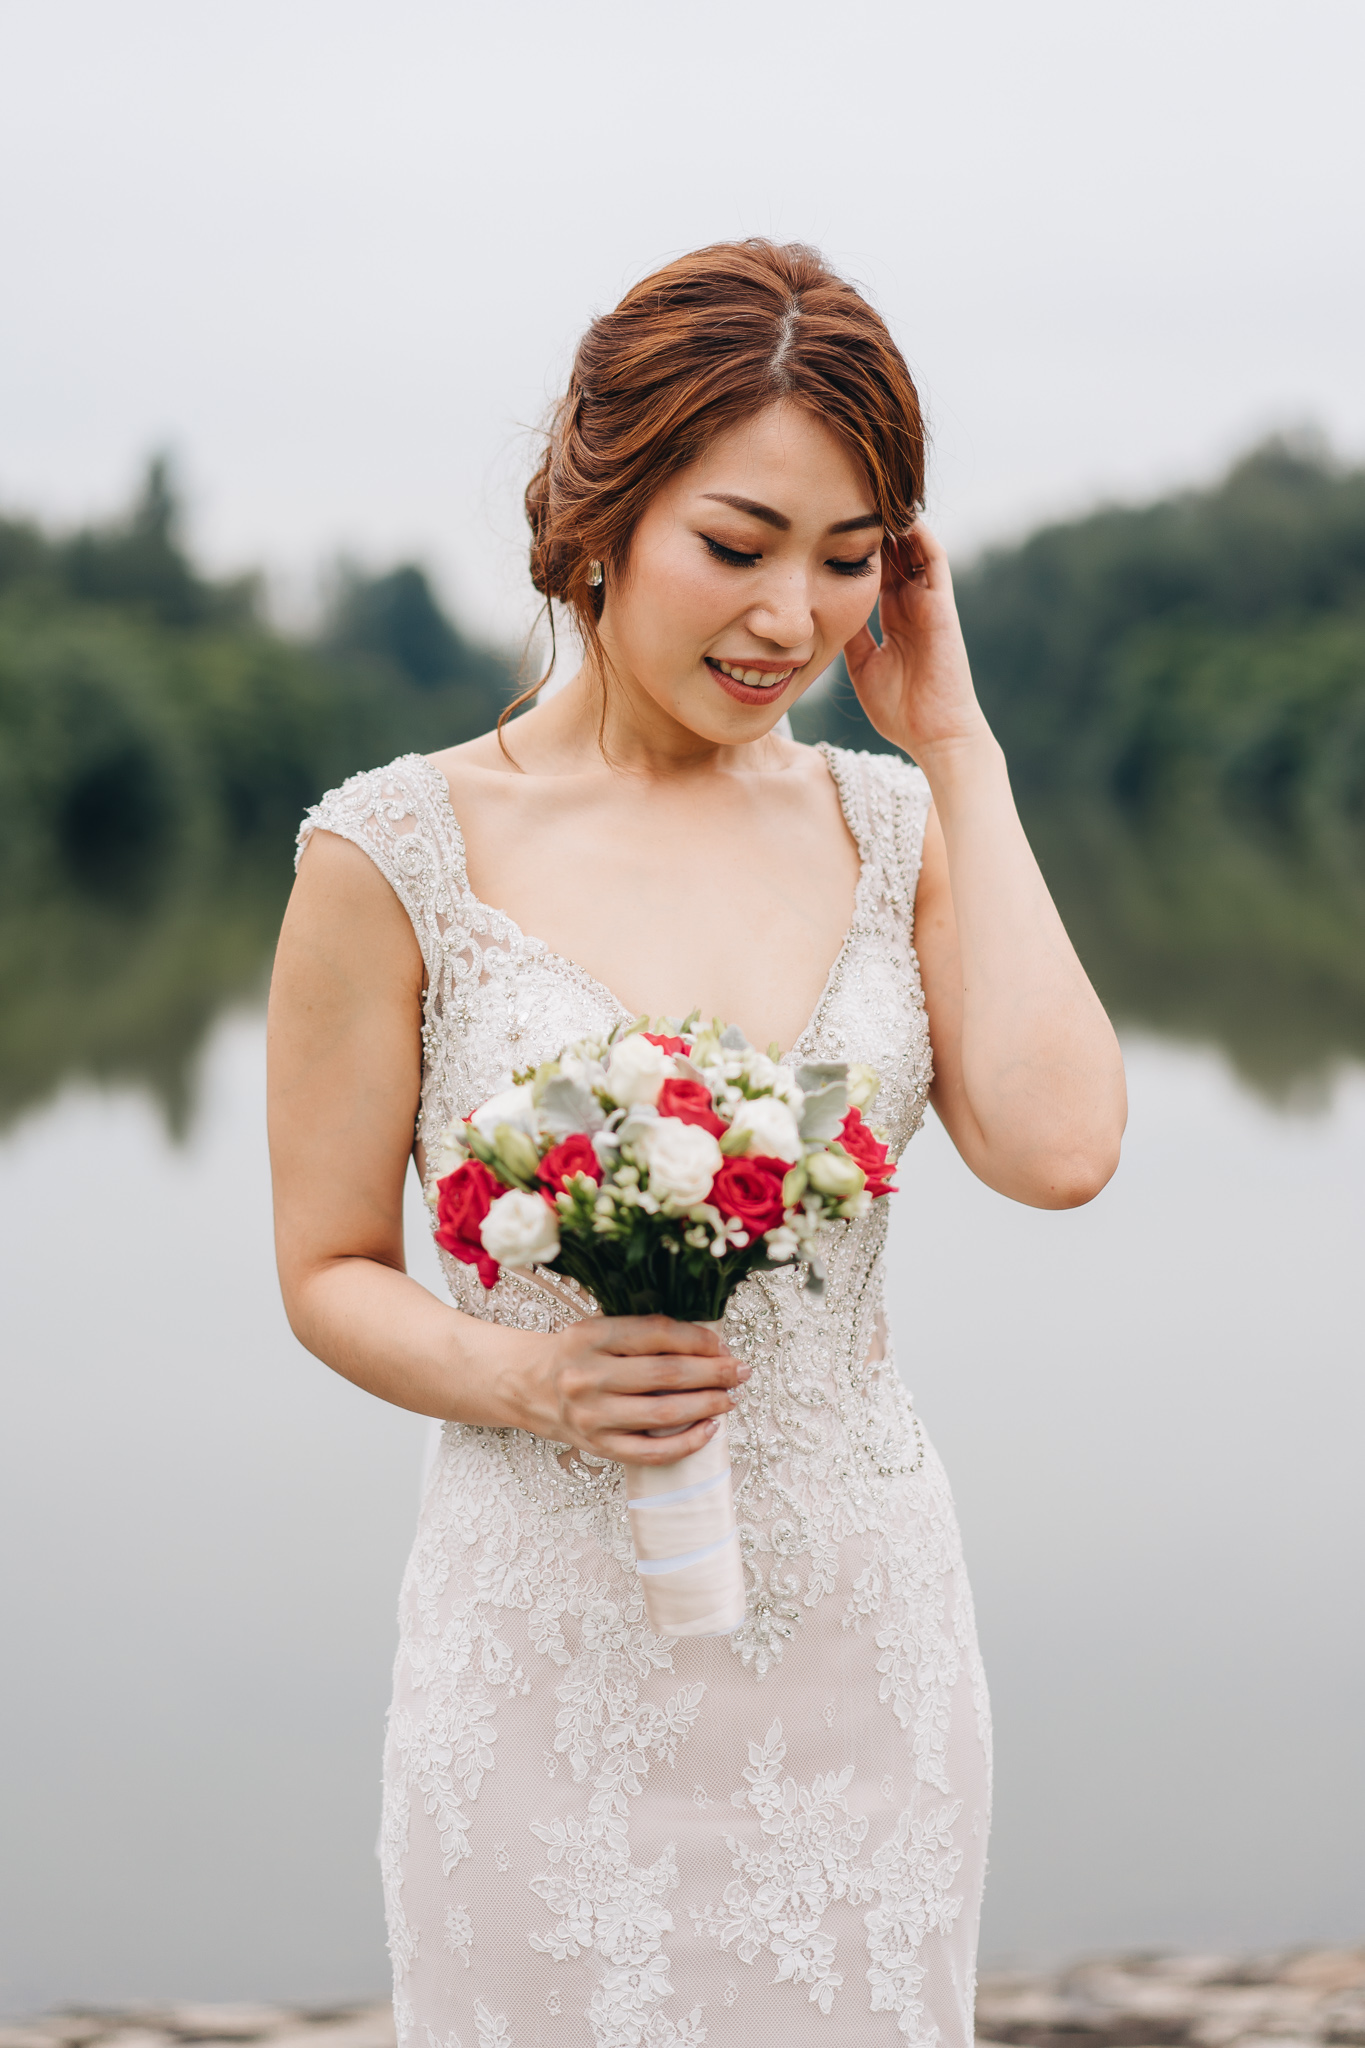 Cindy & Kevin Wedding Day Highlights (resized for sharing) - 110.jpg